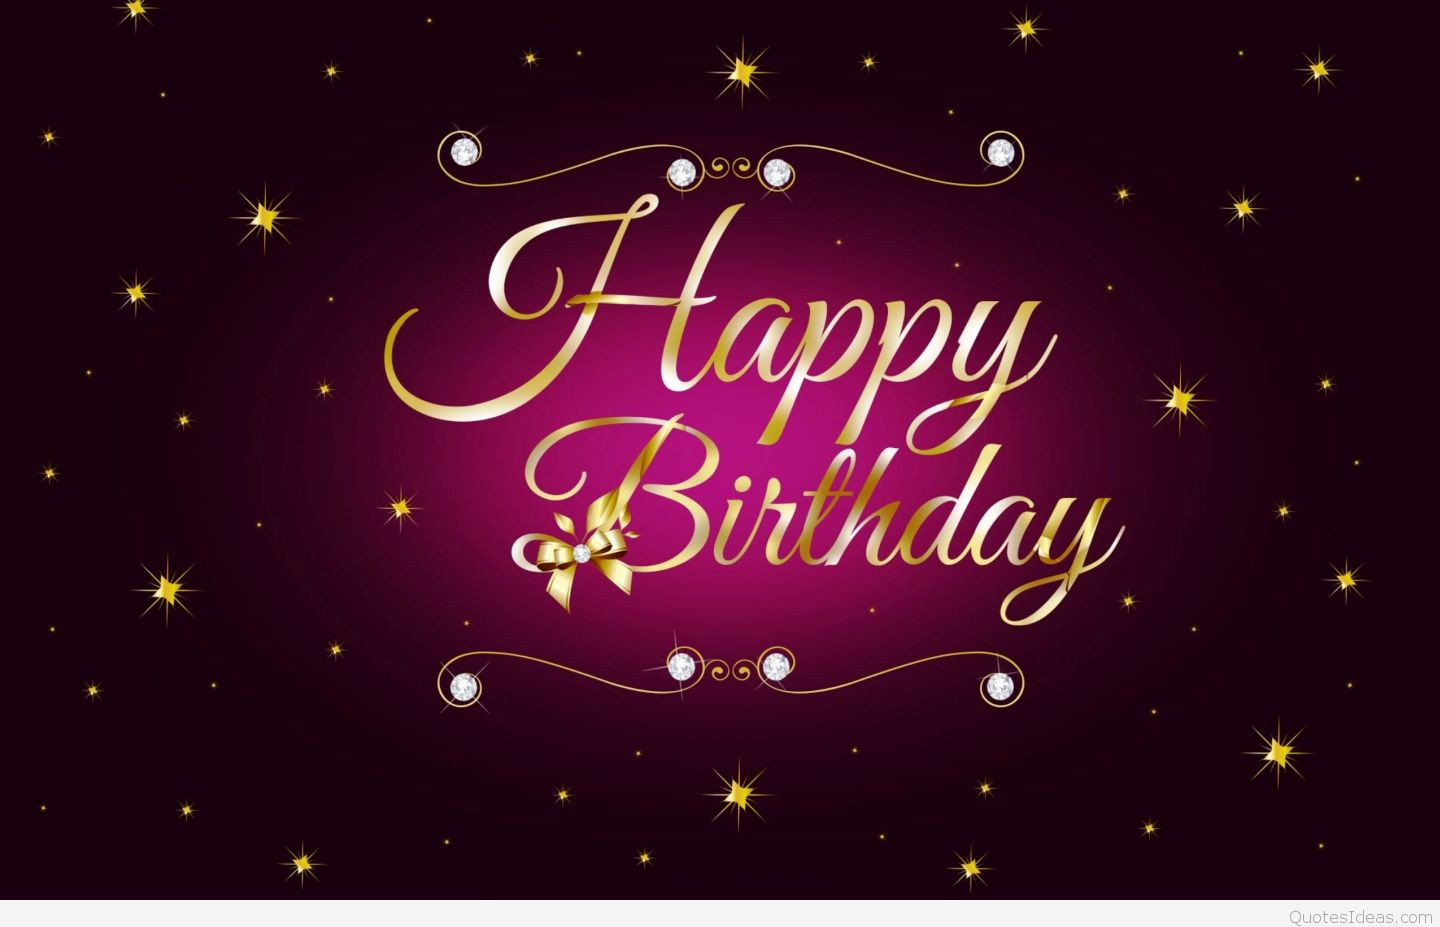 Best ideas about Image Of Happy Birthday Wish . Save or Pin Happy birthday wallpapers quotes and sayings cards Now.